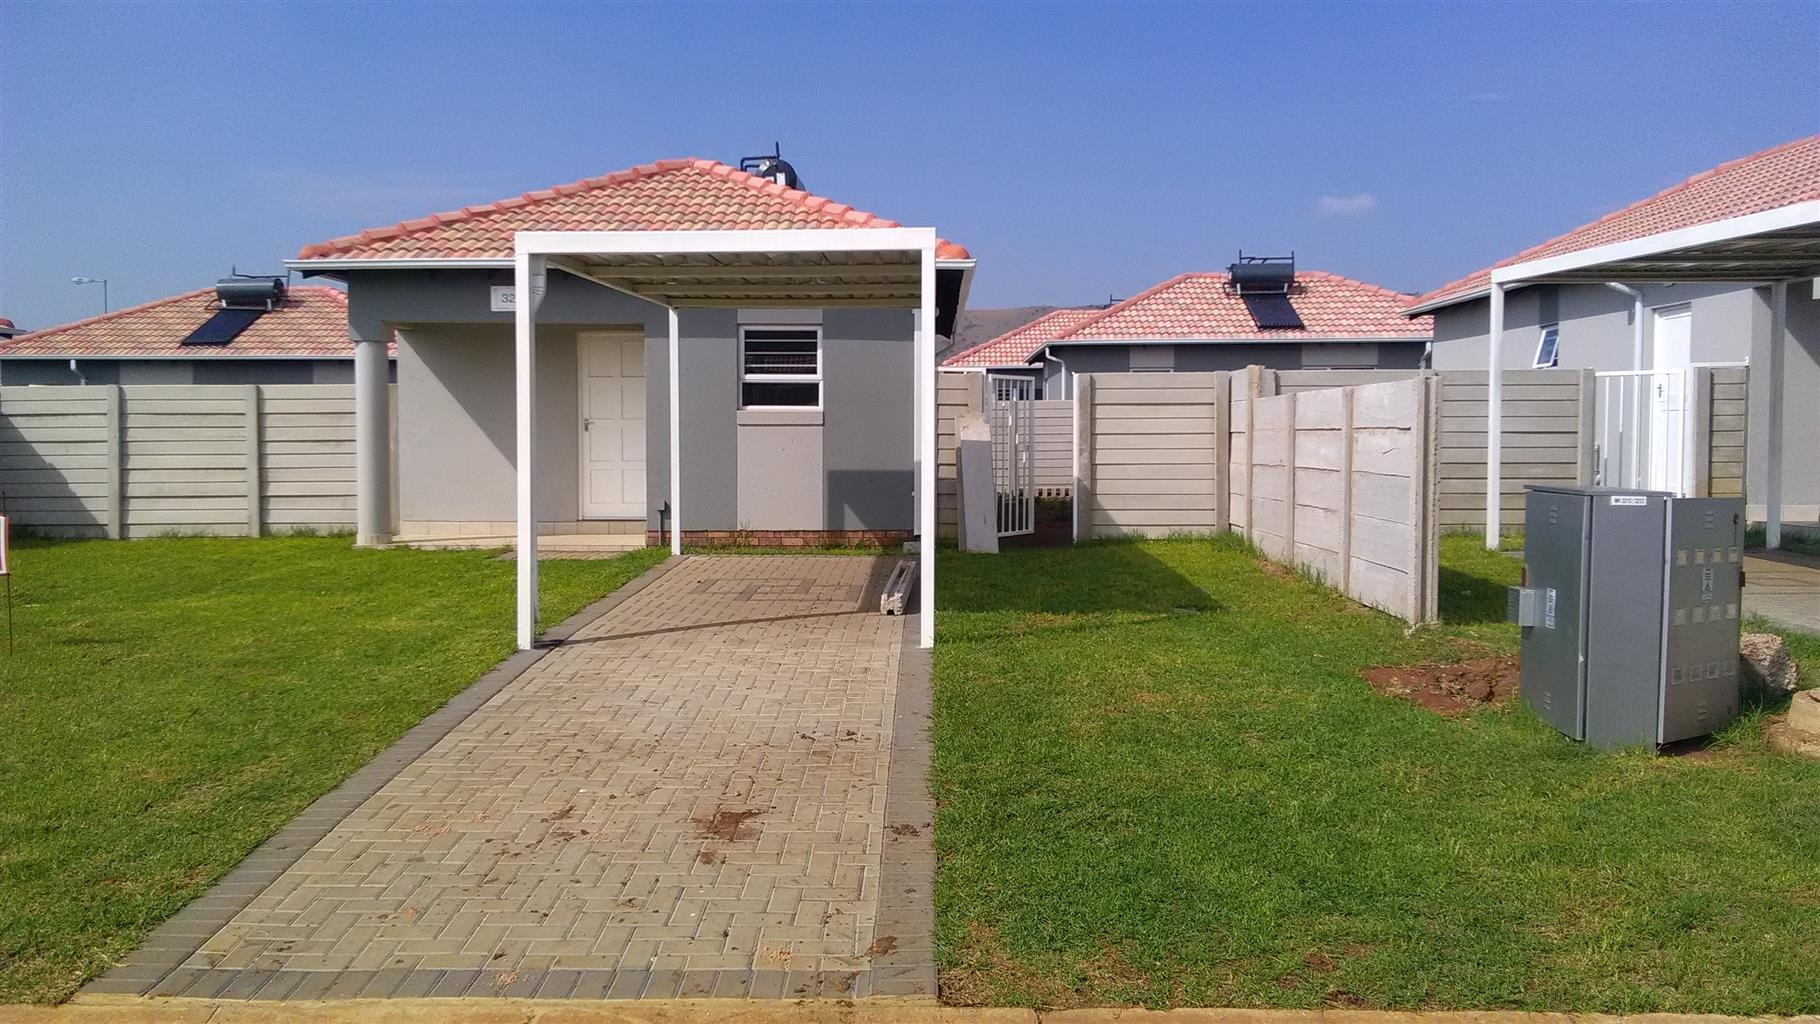 Units for sale in the popular suburb Kirkney Estate in Pretoria West.